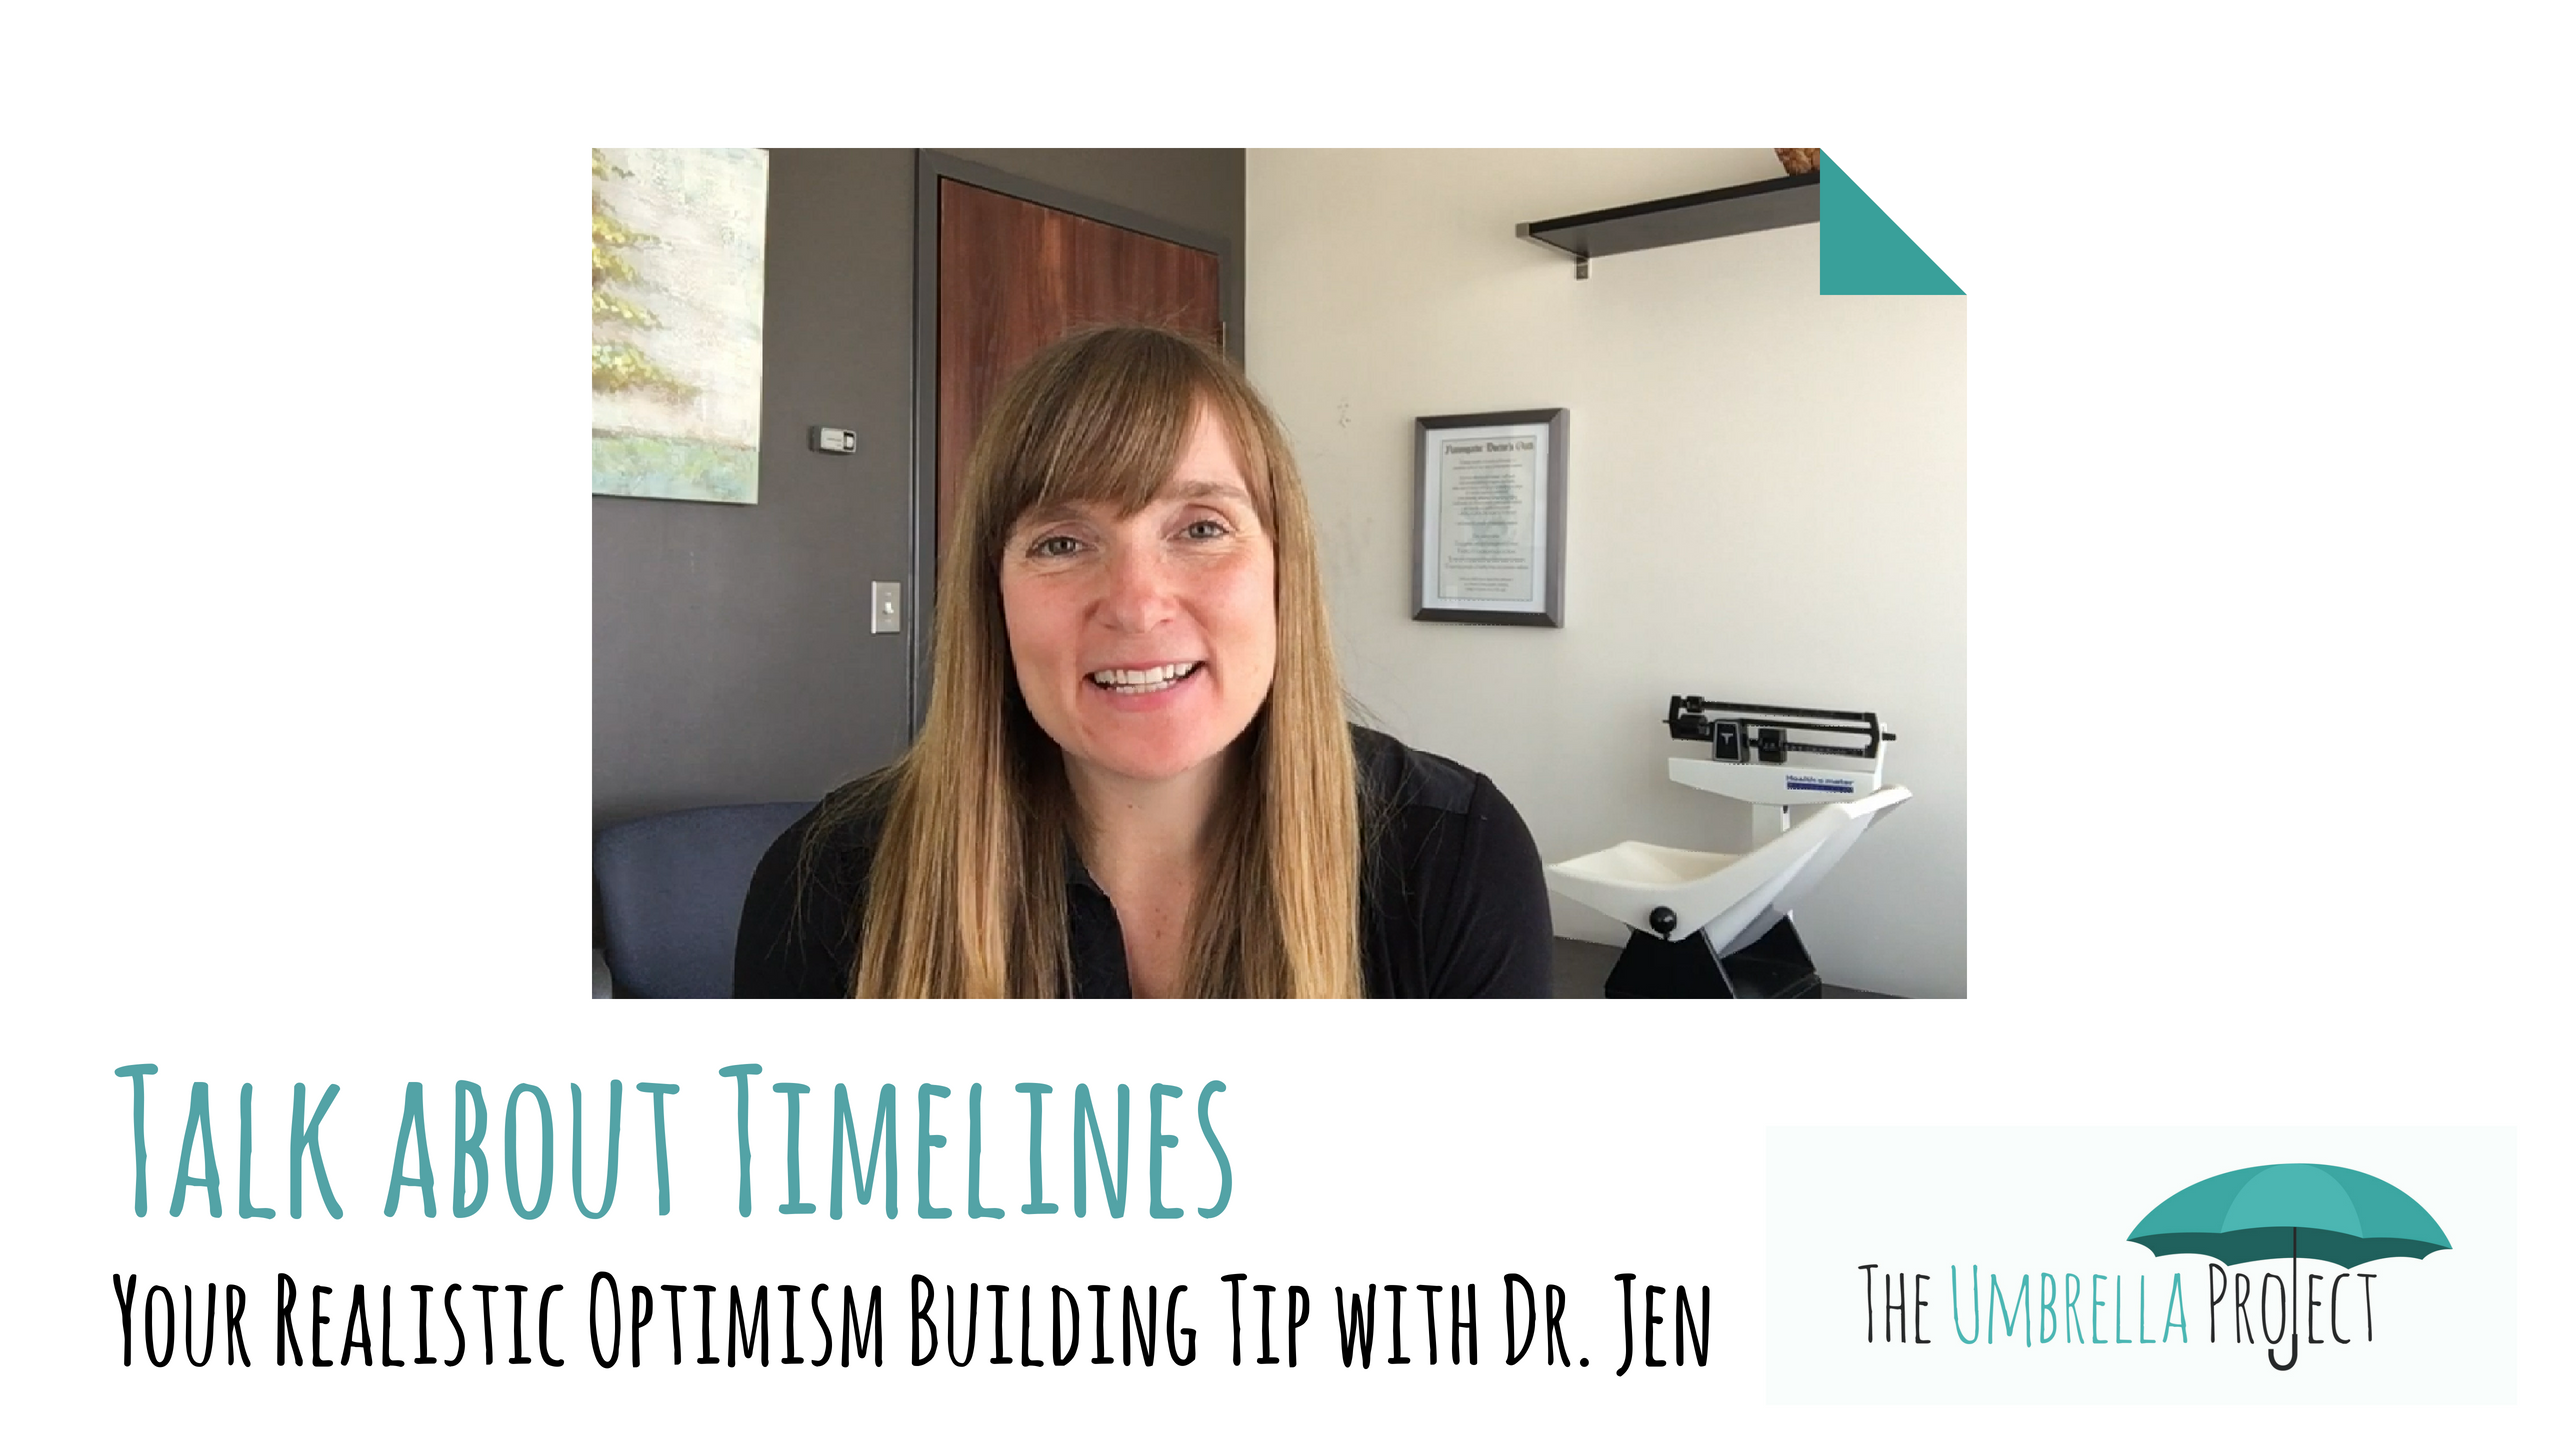 Talk about Timelines: Your Realistic Optimism Building Tip with Dr. Jen